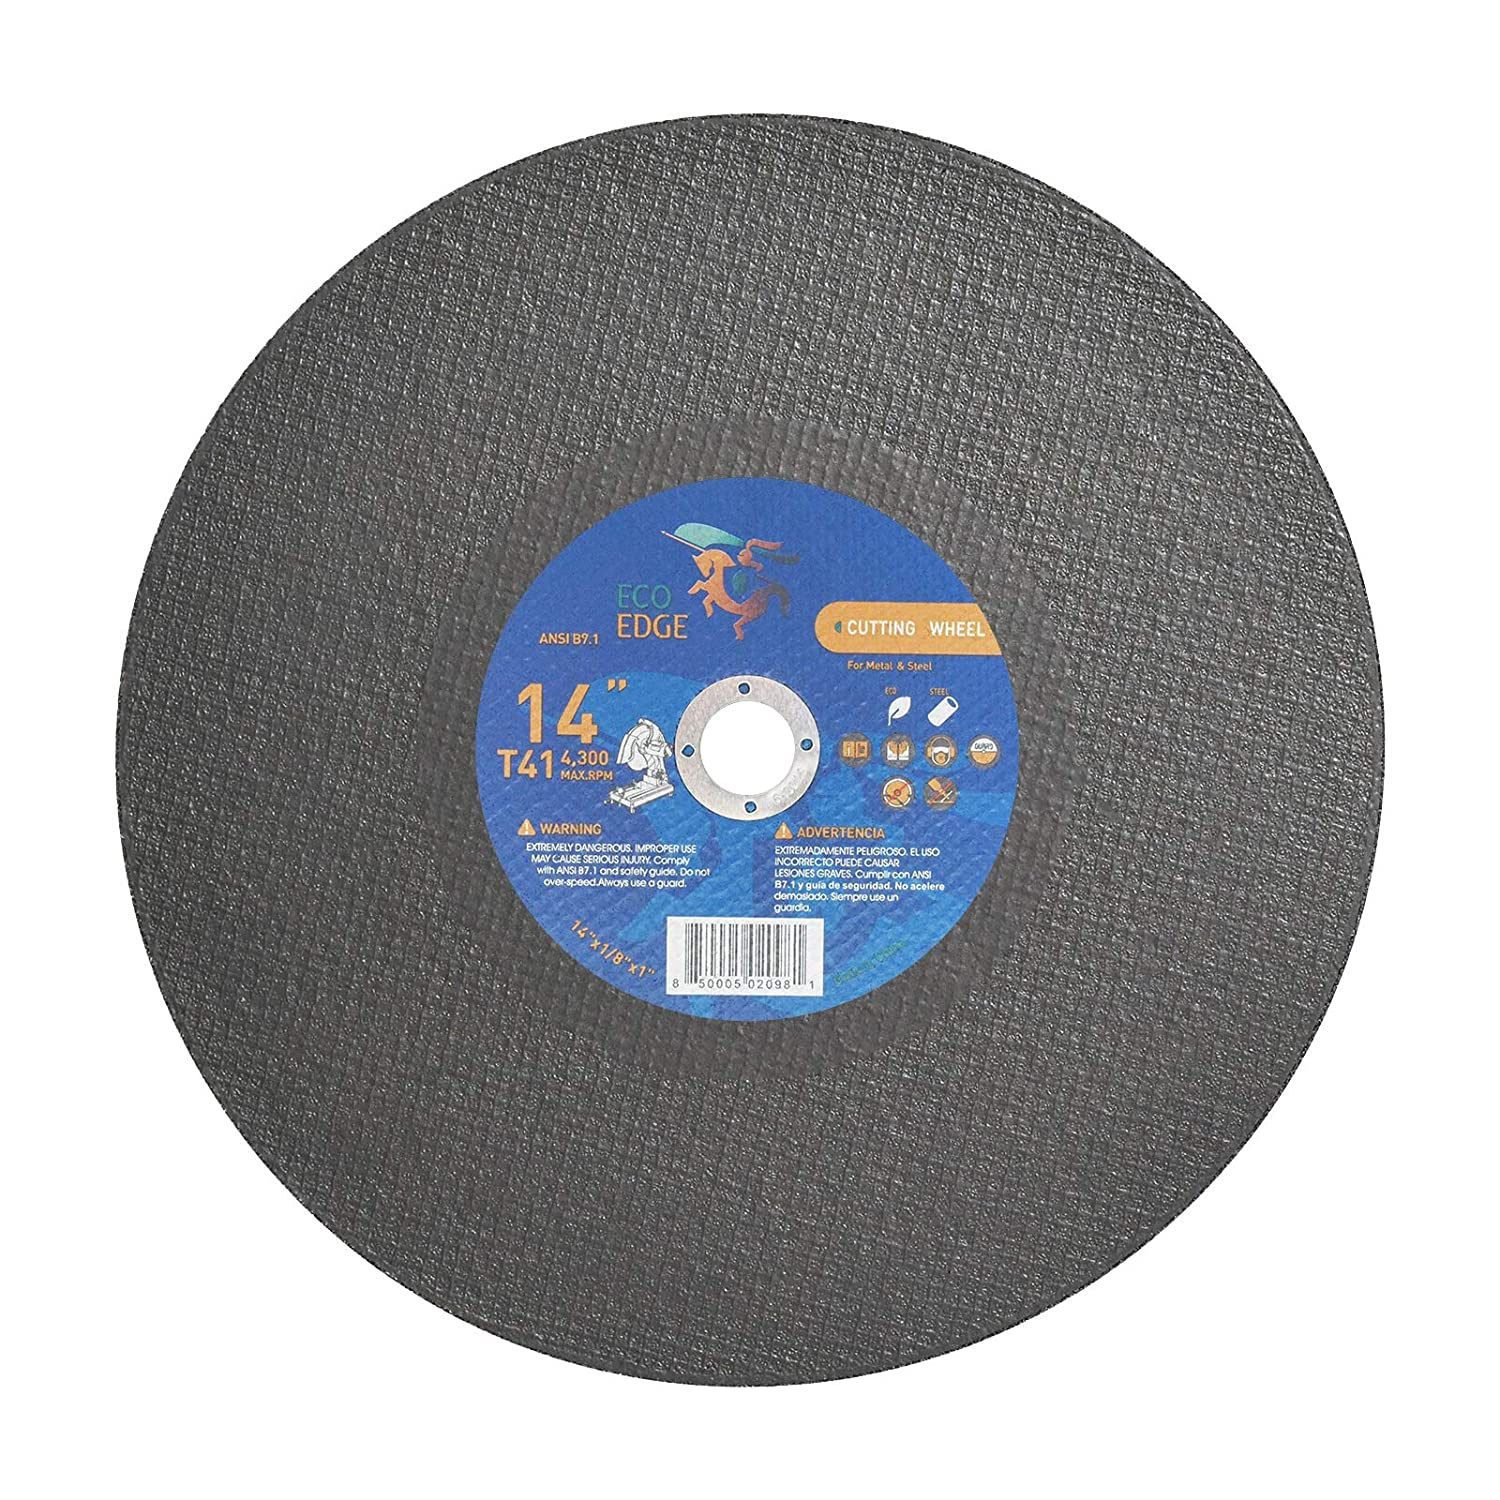 Eco New Orleans Mall Edge 10-Pack 14-Inch Cut Off for Saw Phoenix Mall Wheels Chop Blade 14